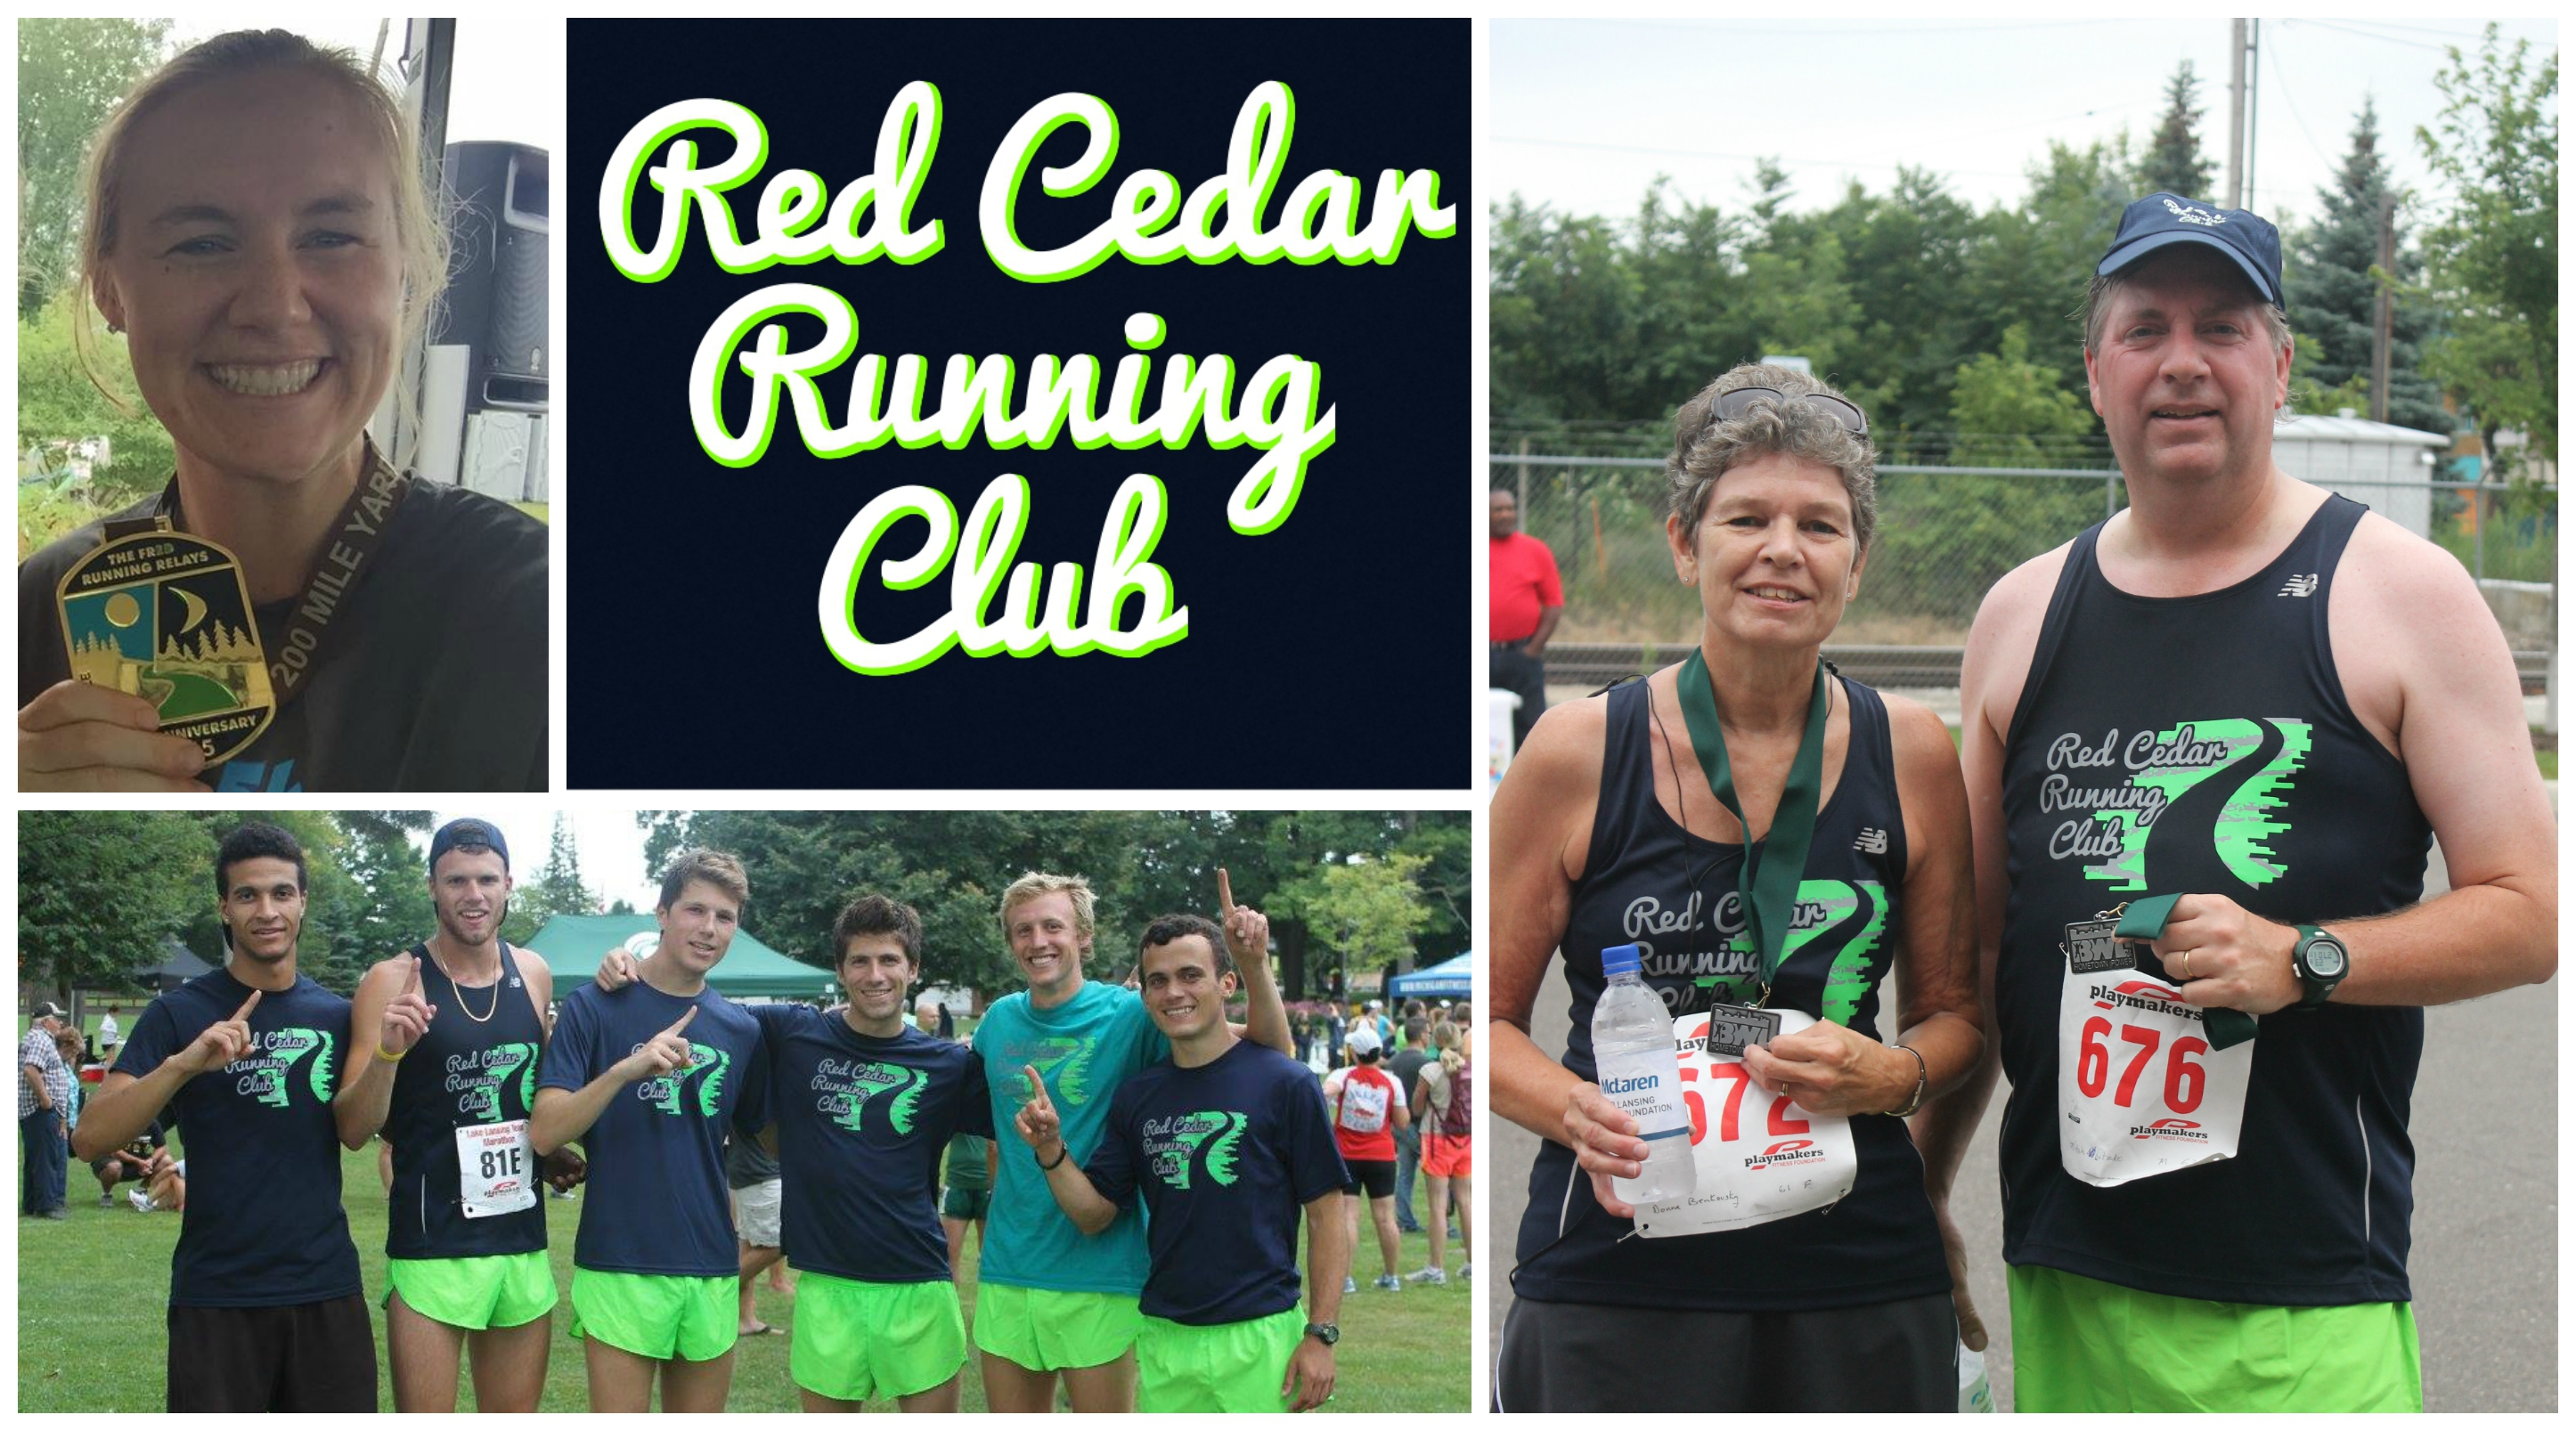 Busy Weekend For Red Cedar Running